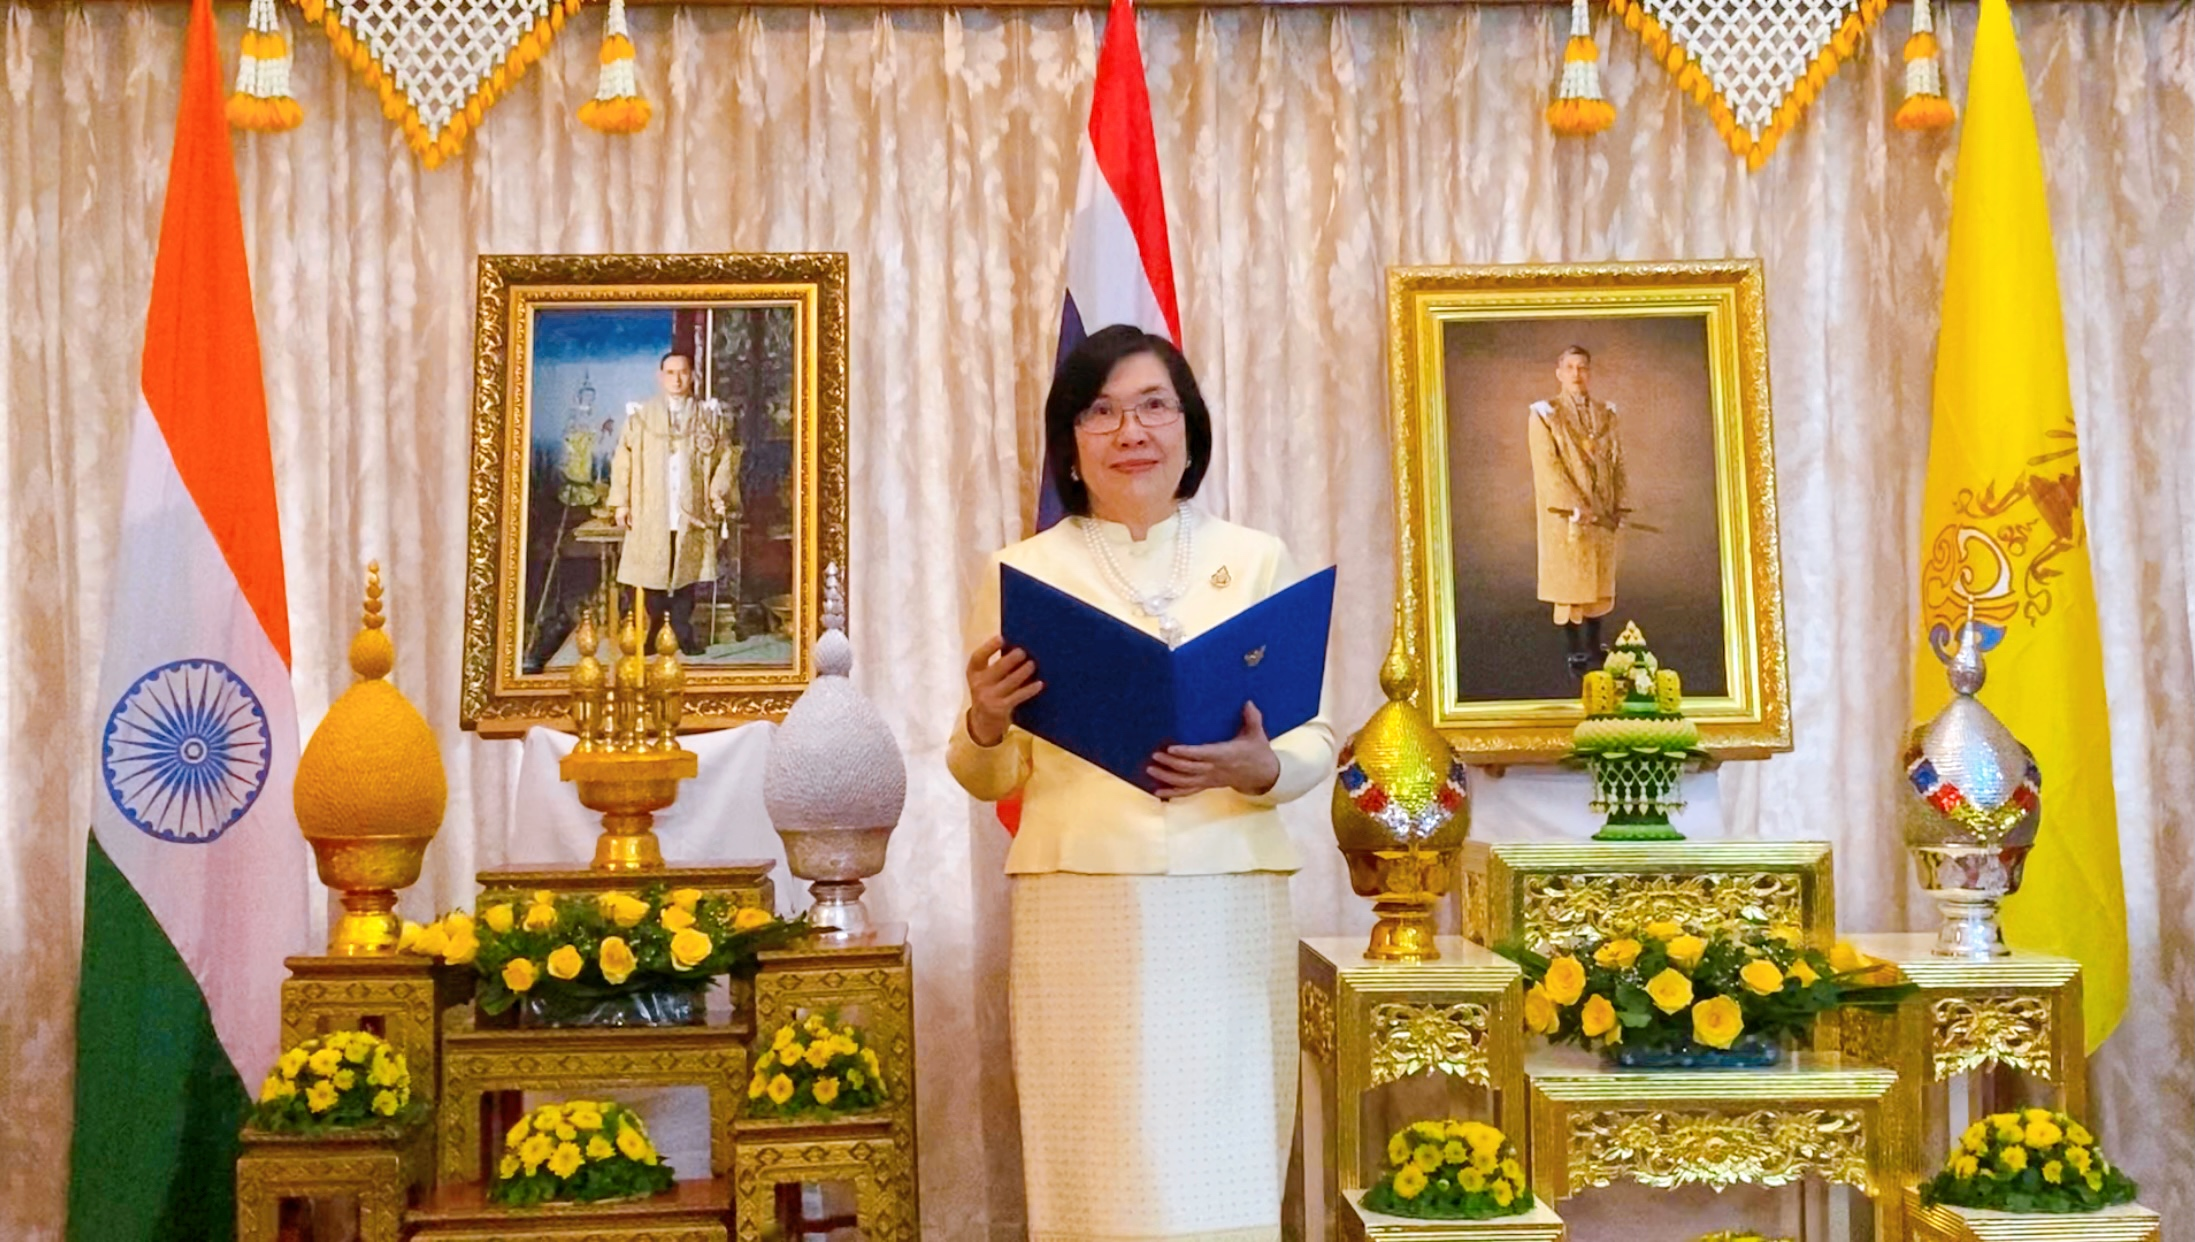 Consul-General of Thailand to Kolkata delivered remarks on the occasion of the National Day of the Kingdom of Thailand🇹🇭